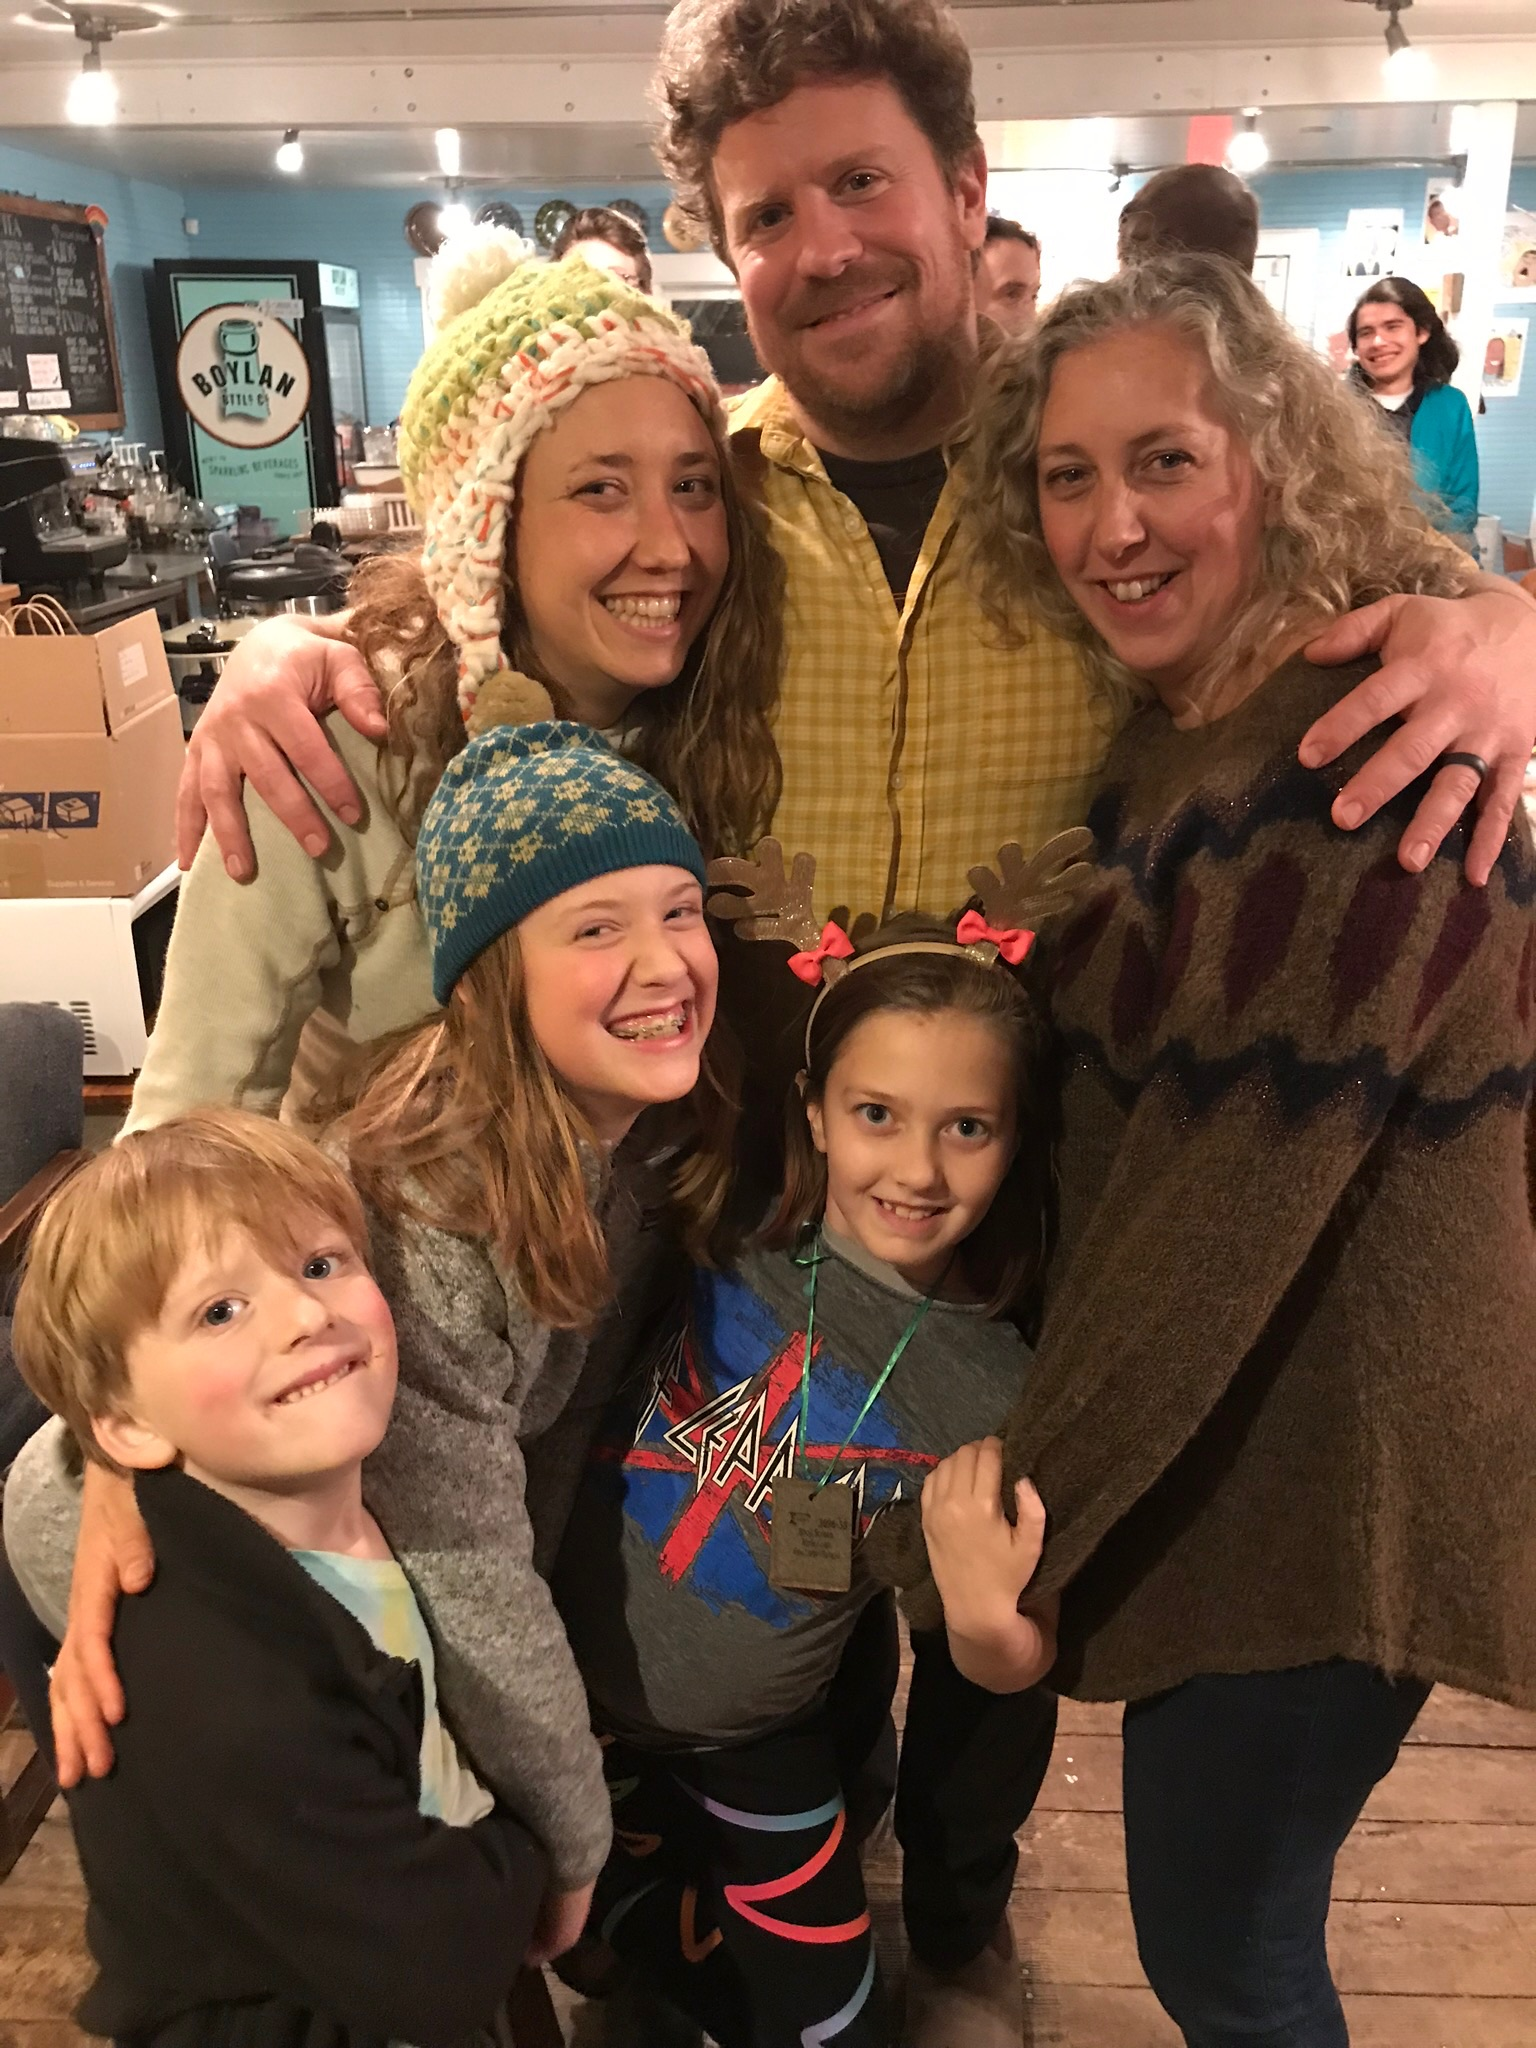 TB&C is a true family business. In this photo Betsy Bertram, Taylor Dansby, and Sara Abernethy embrace in a group hug with Isla, Rowan and Louis at our holiday staff celebration at Johnny's.